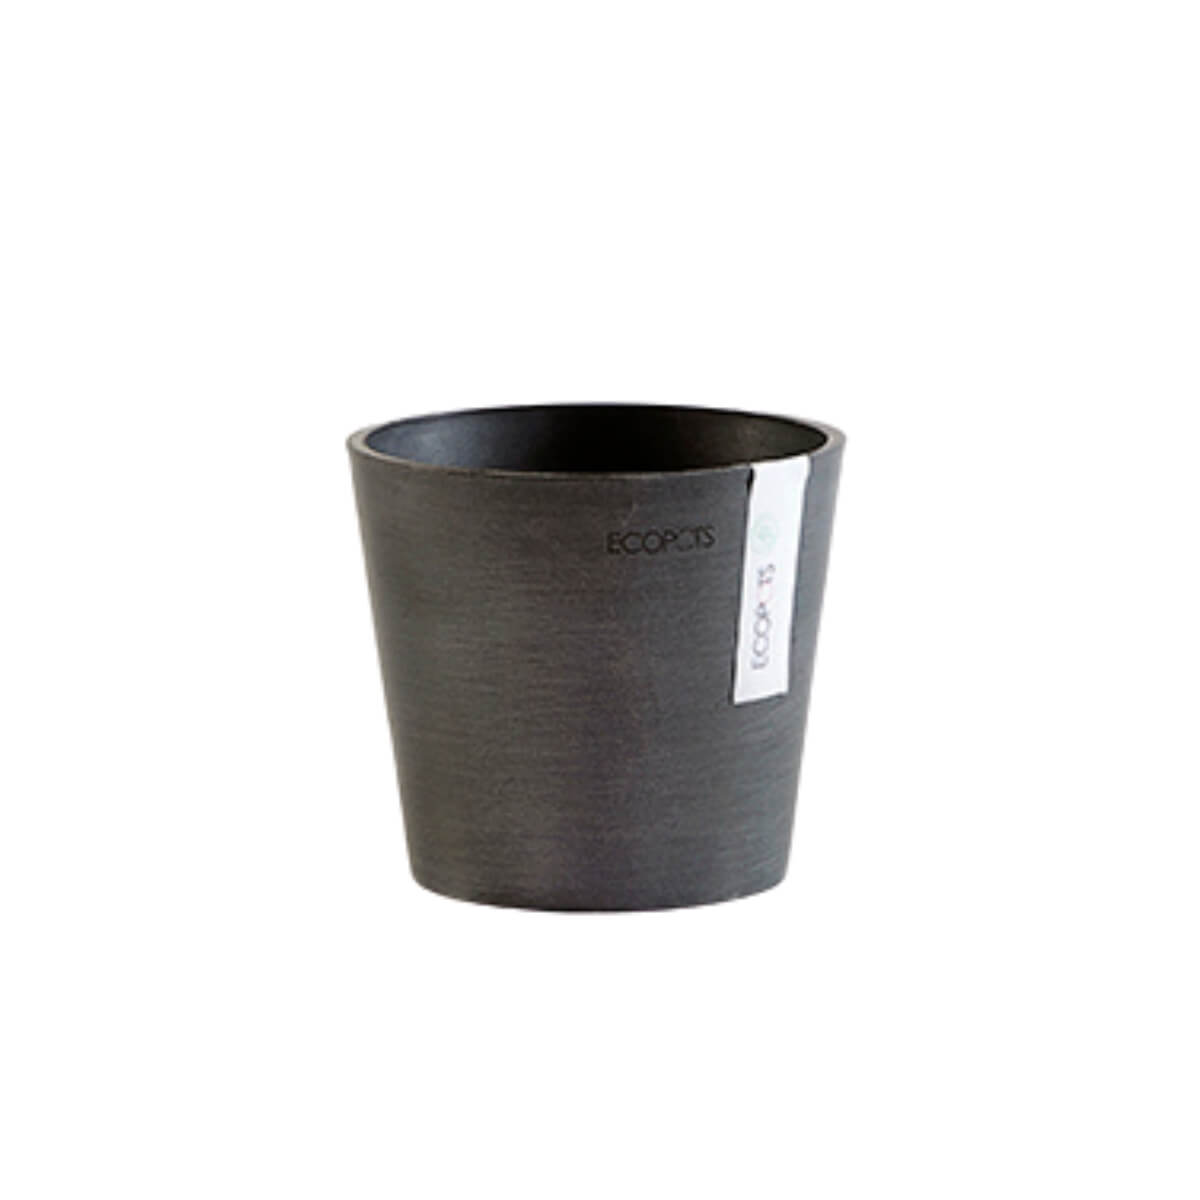 Medium Ecopots Amsterdam pot black